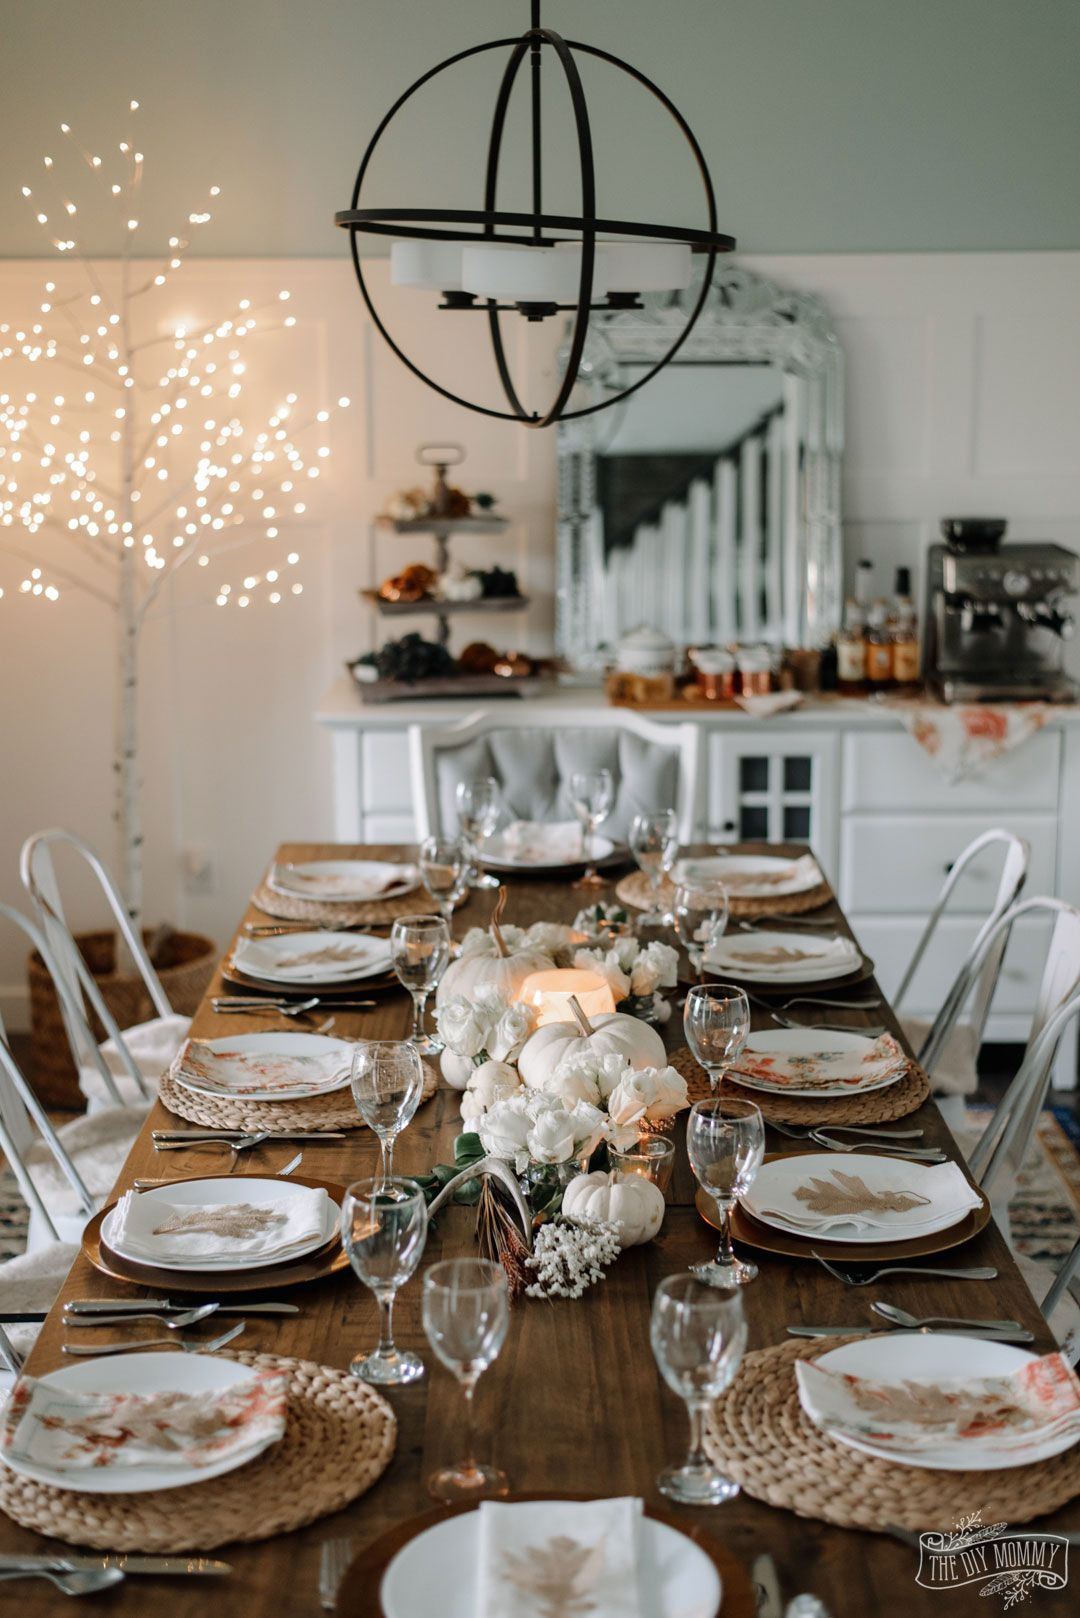 An Elegant Thanksgiving Table for 12 in Whites & Creams ...